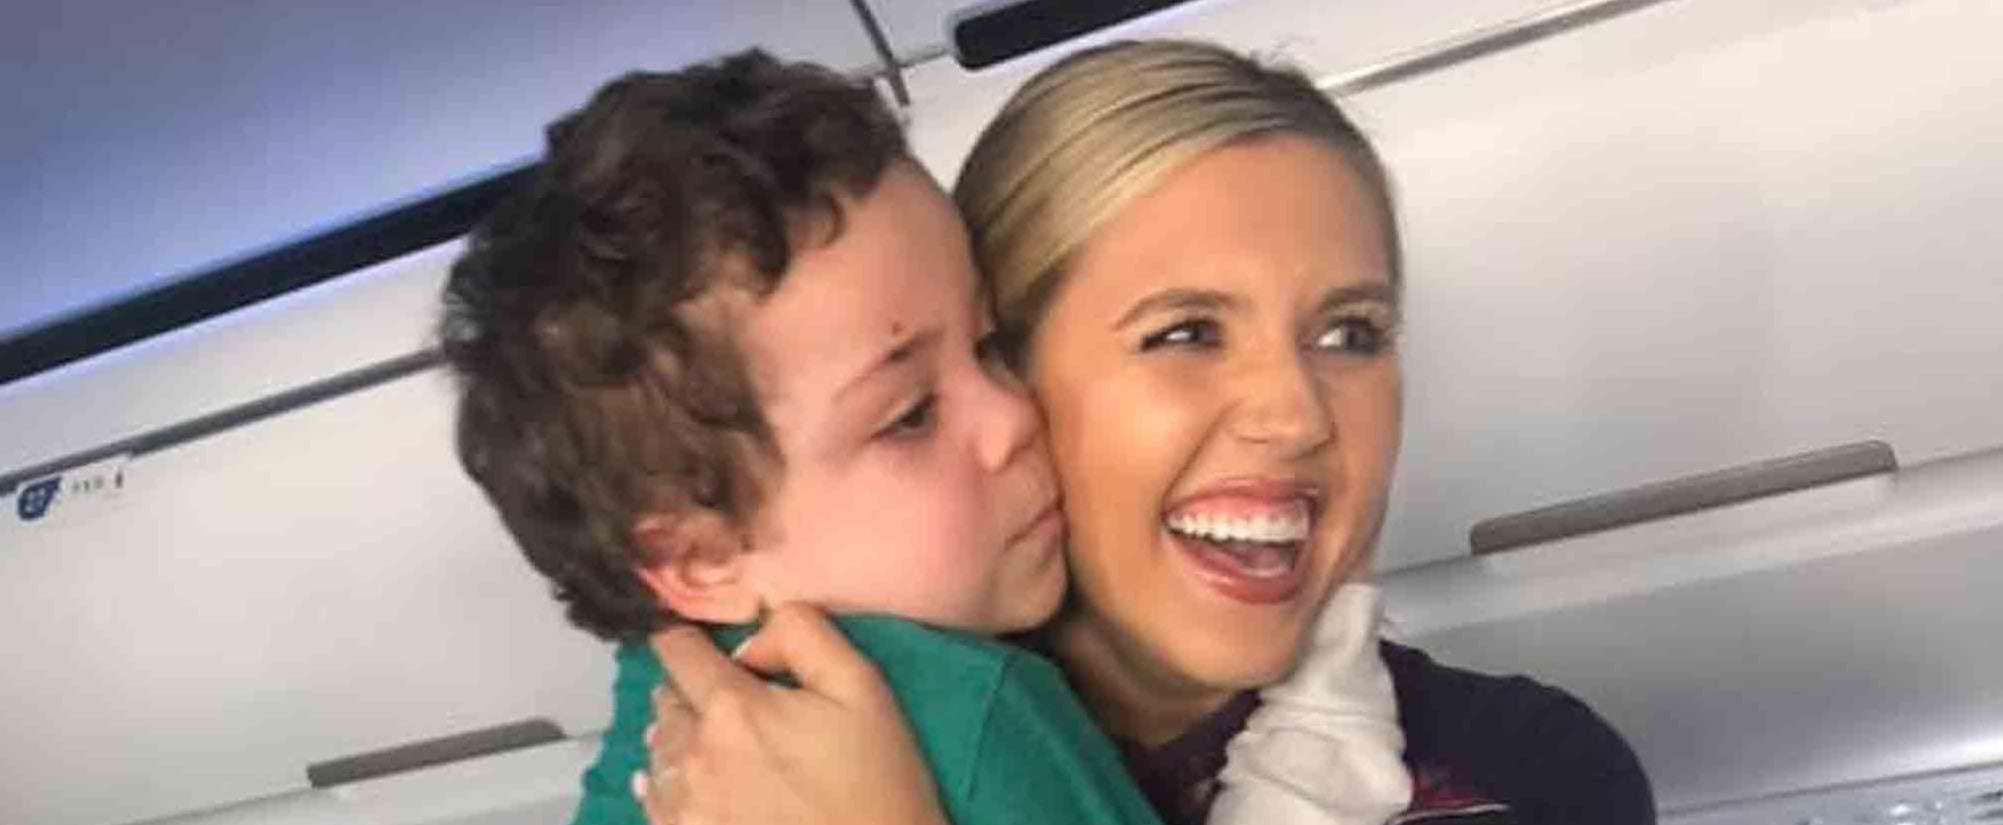 Flight Attendant Helps a Boy With Special Needs